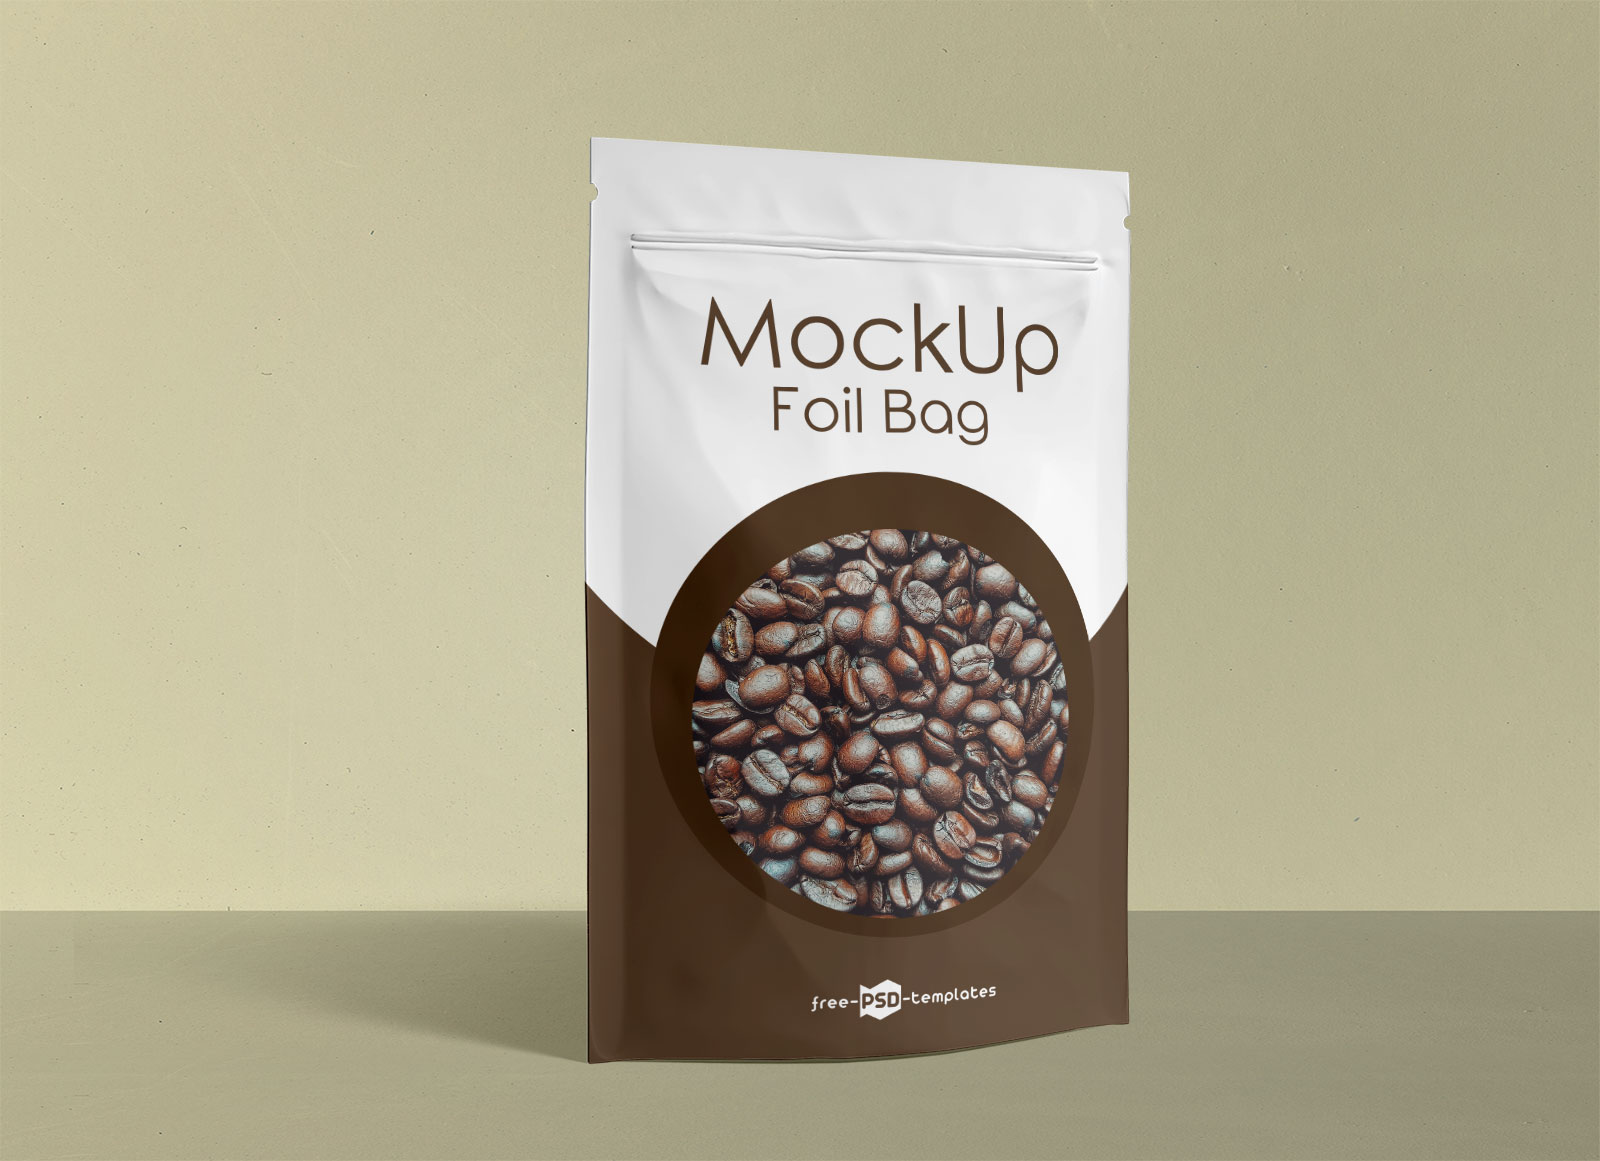 Free Stand-Up Foil Pouch For Food Packaging Mockup PSD Set